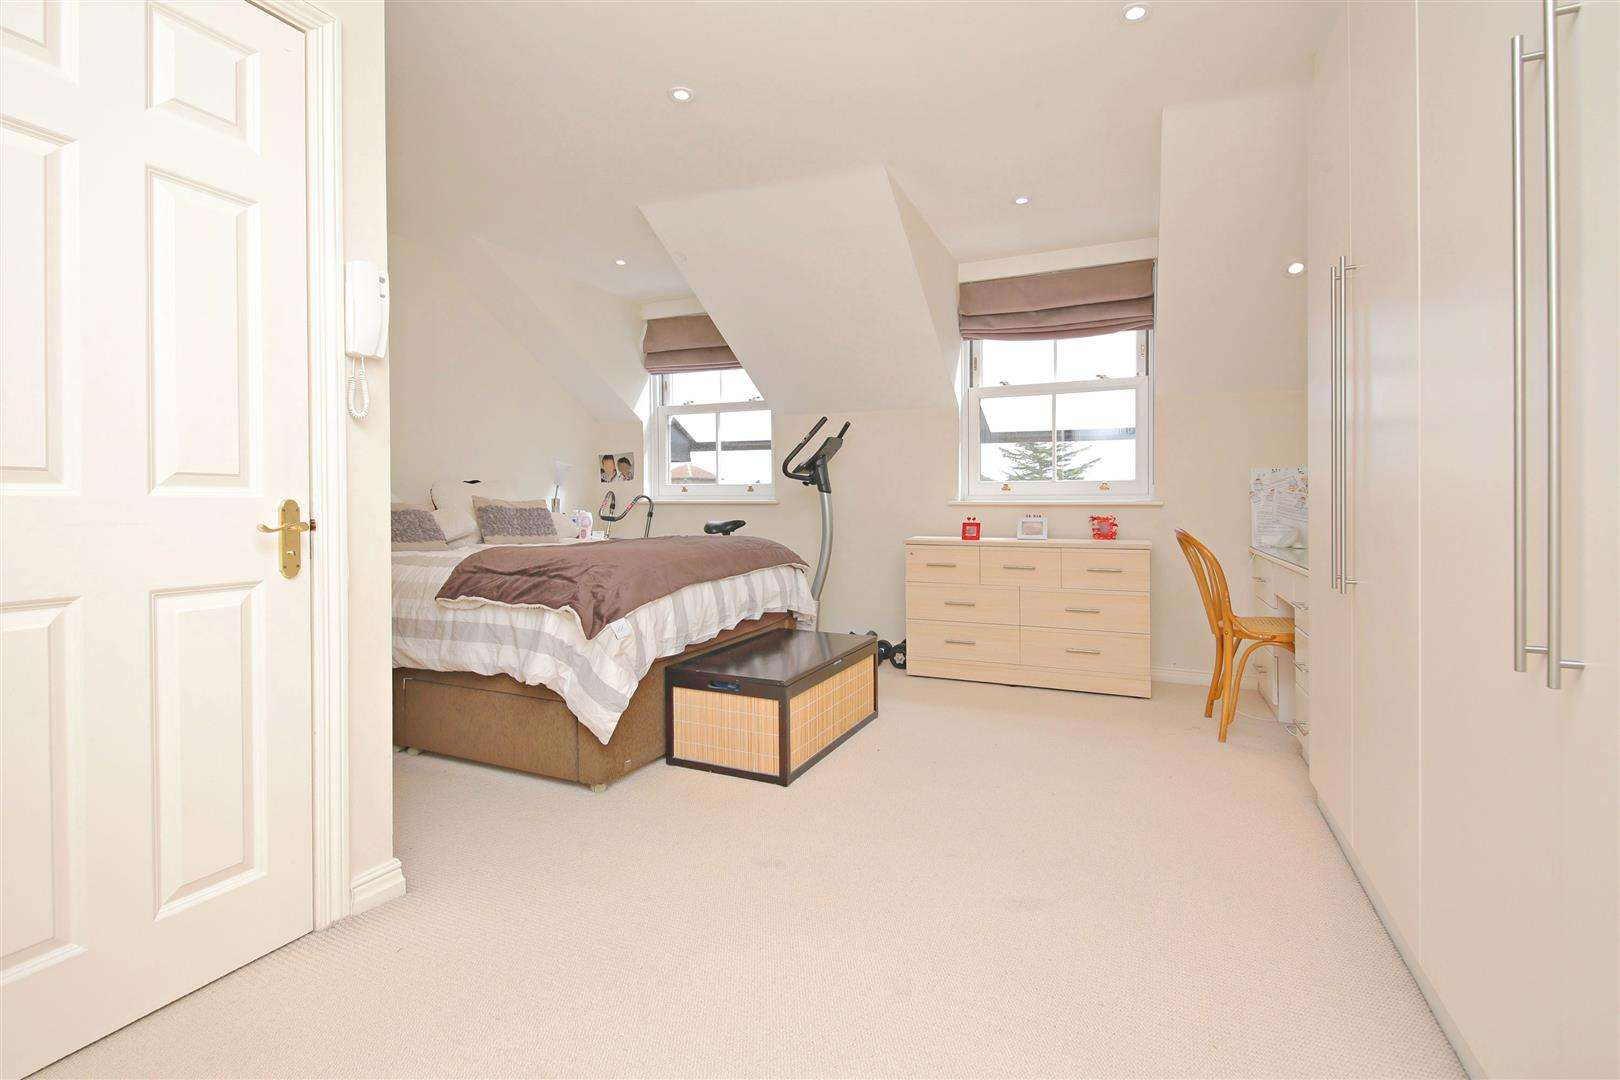 4 bed to rent in Shenley - (Property Image 7)